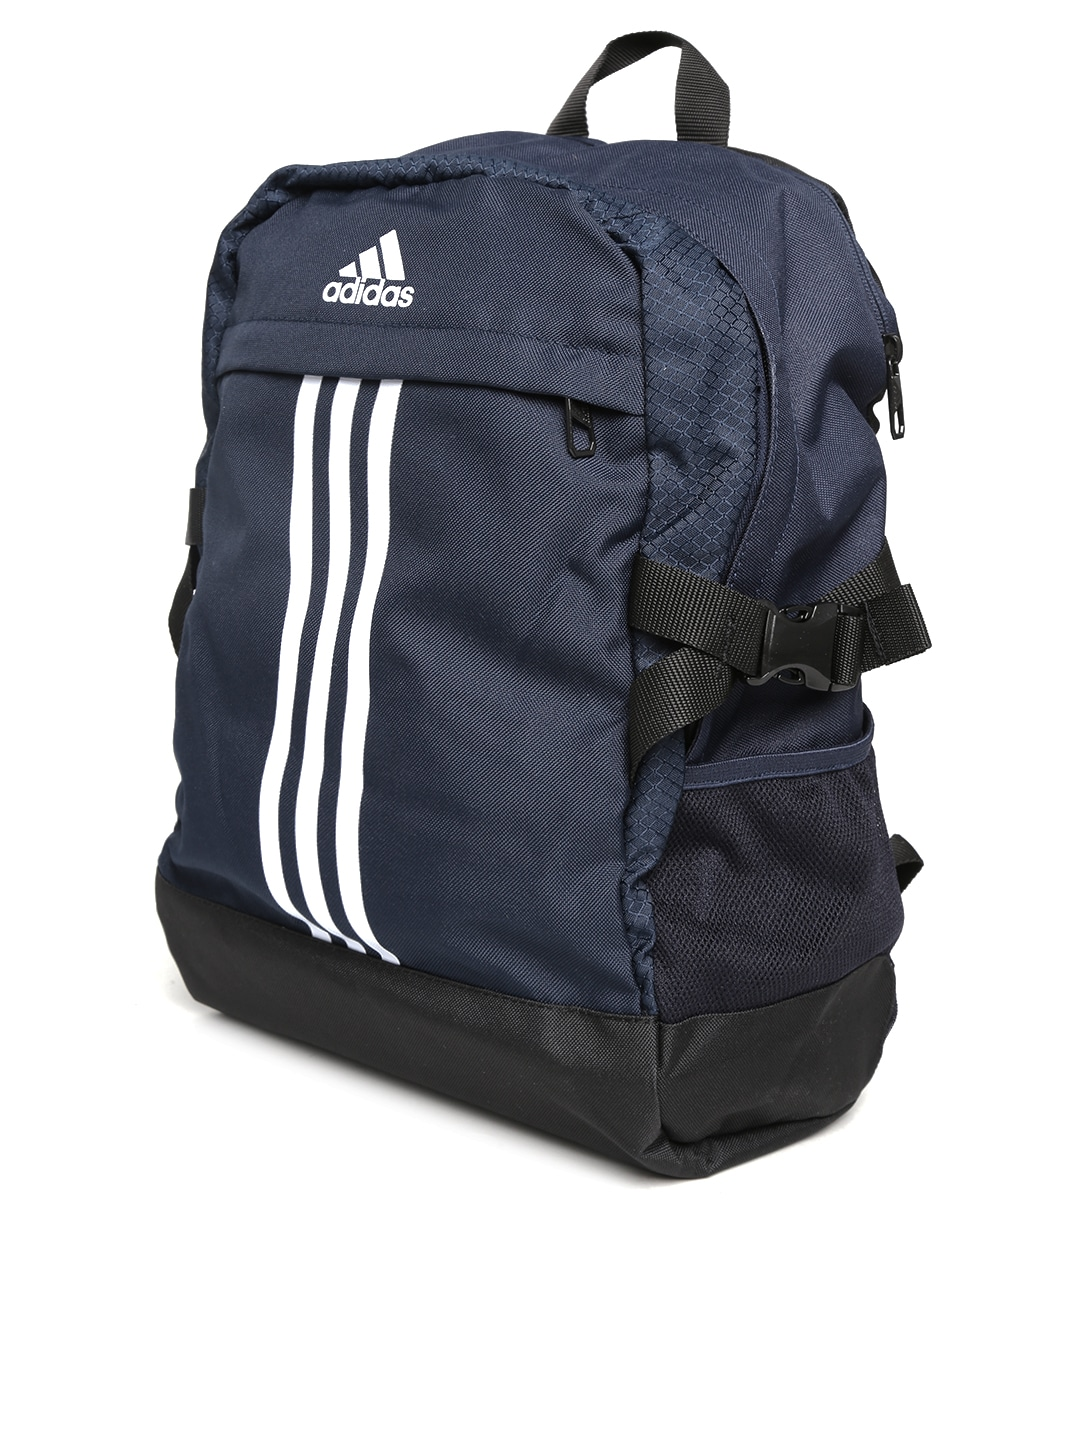 9a9d13308cb75 Adidas And Bags Laptop Bag Backpacks - Buy Adidas And Bags Laptop Bag  Backpacks online in India